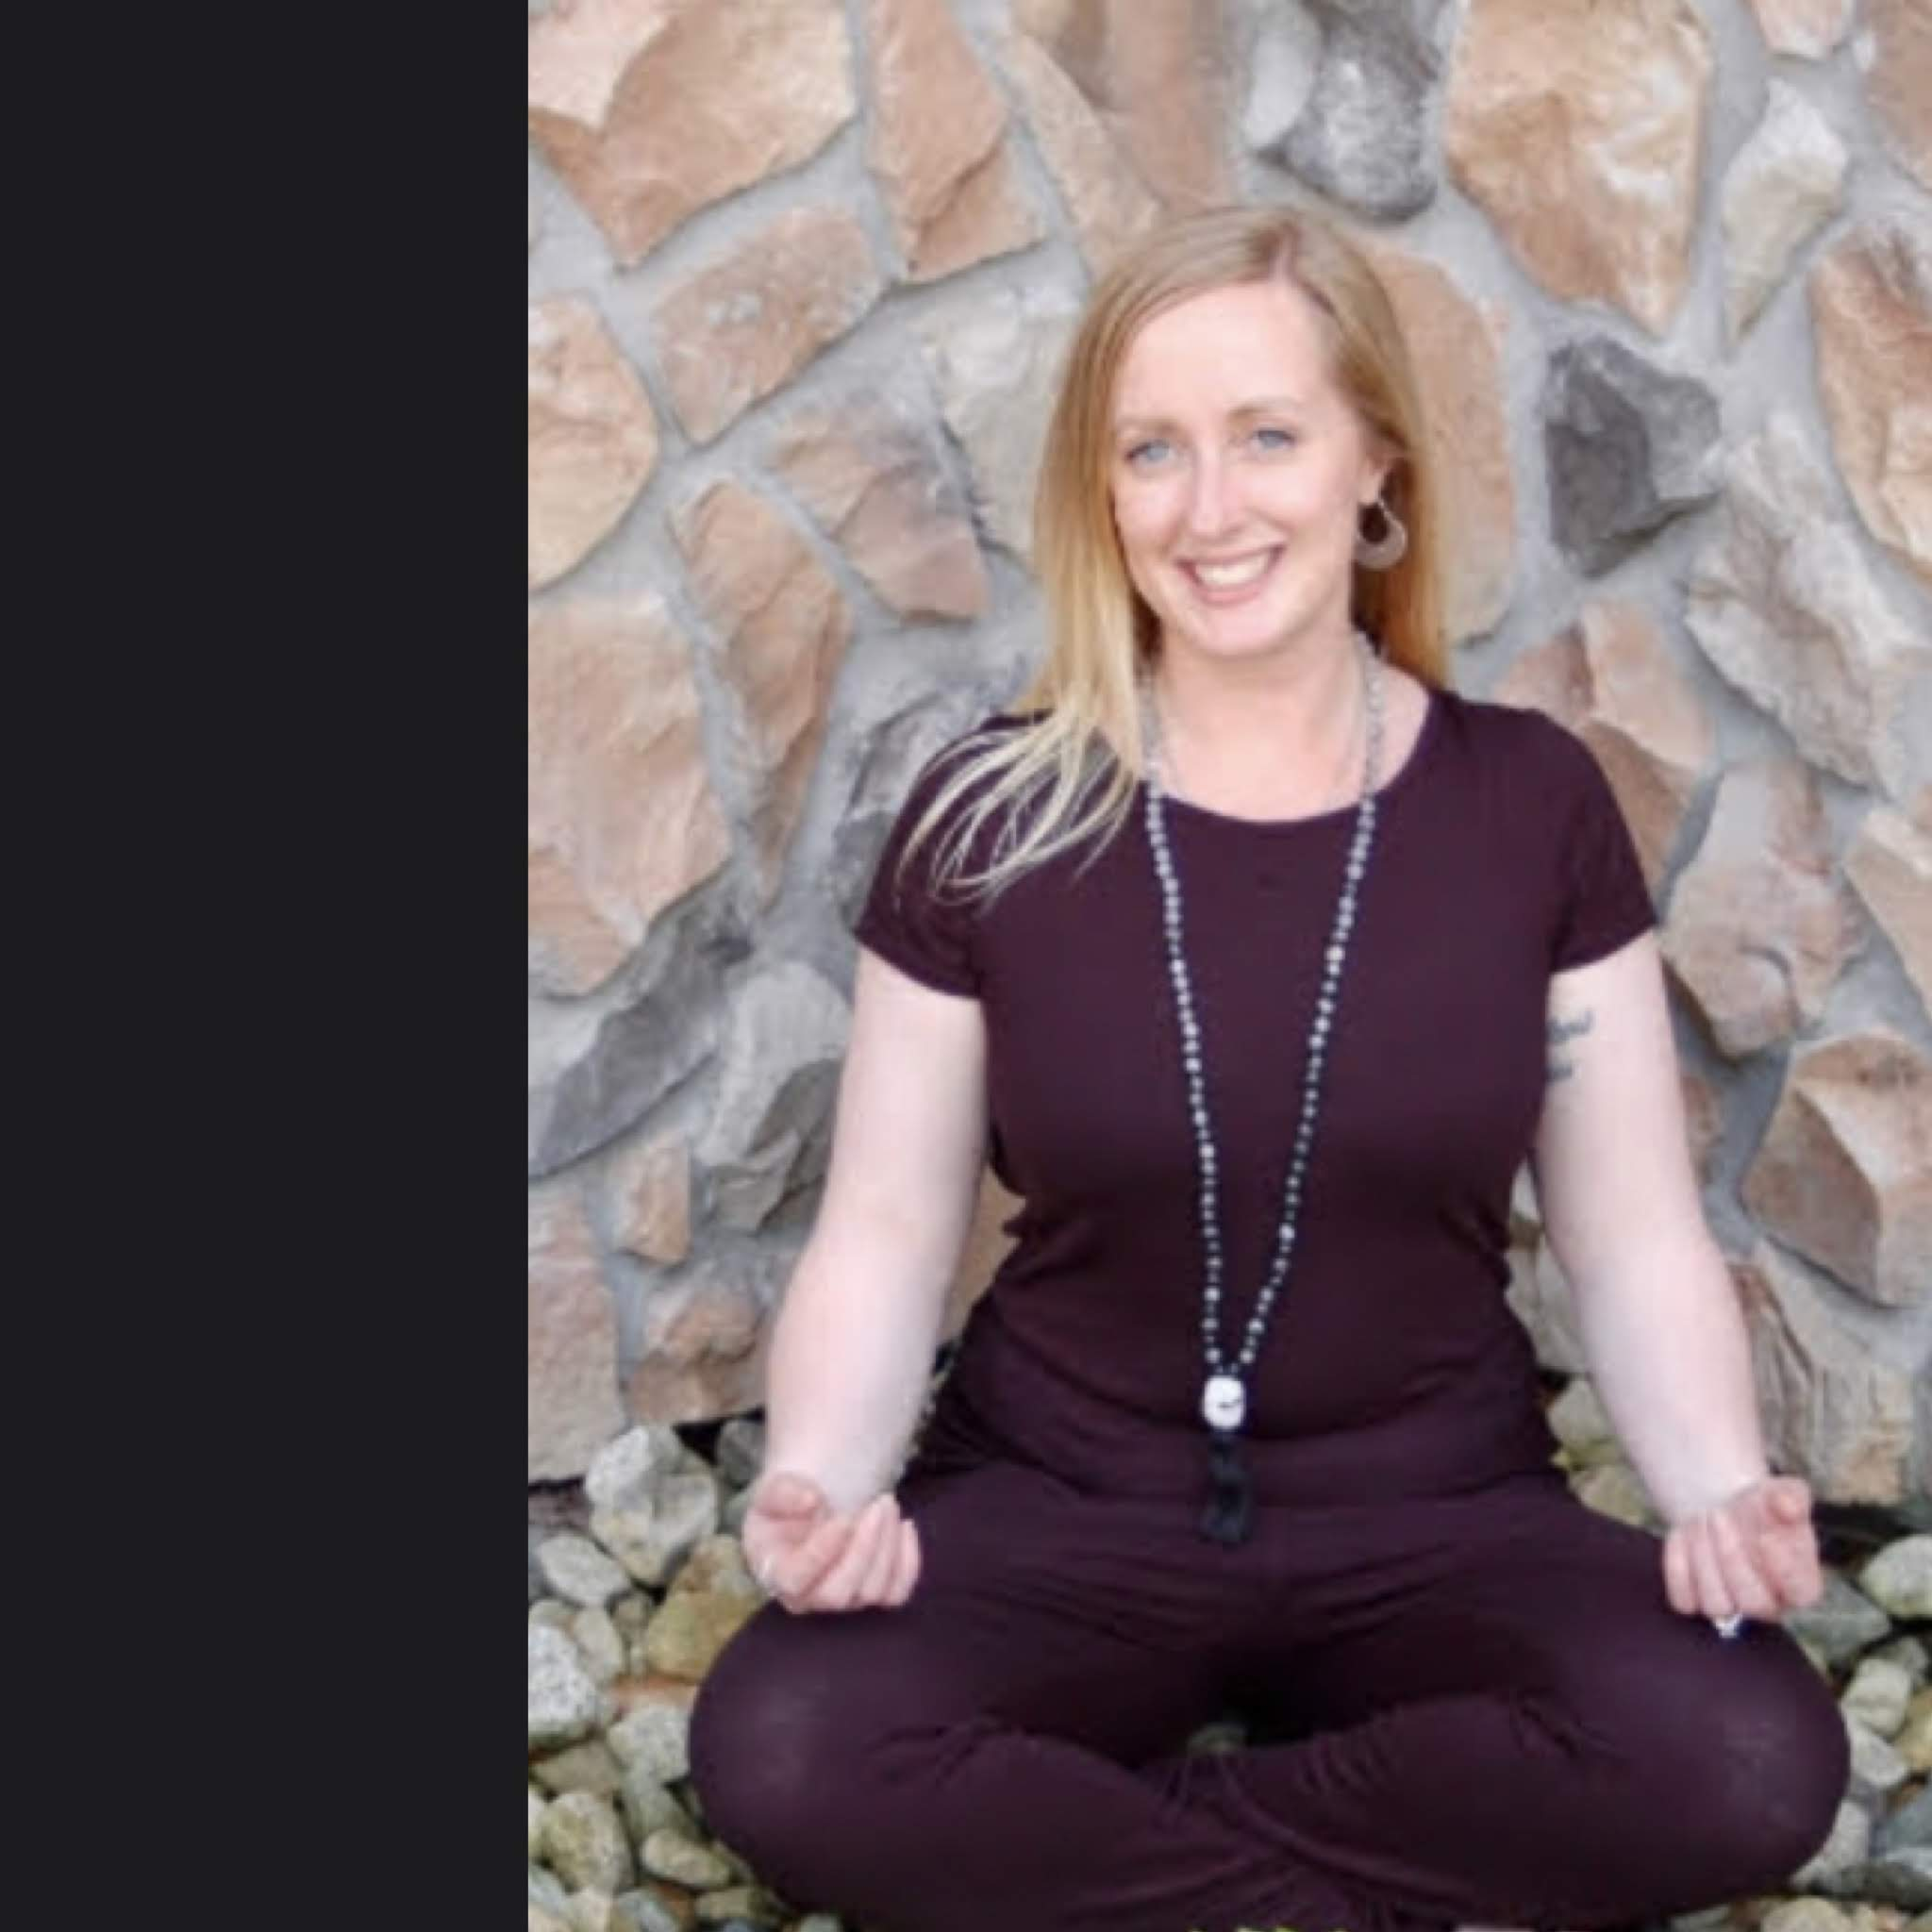 Meet Rebecca - REBECCA PACKARD IS A CERTIFIED BODY CODE PRACTITIONER BRINGING HOLISTIC TOOLS TO PEOPLE FOR PRACTICAL USE IN EVERYDAY LIFE.